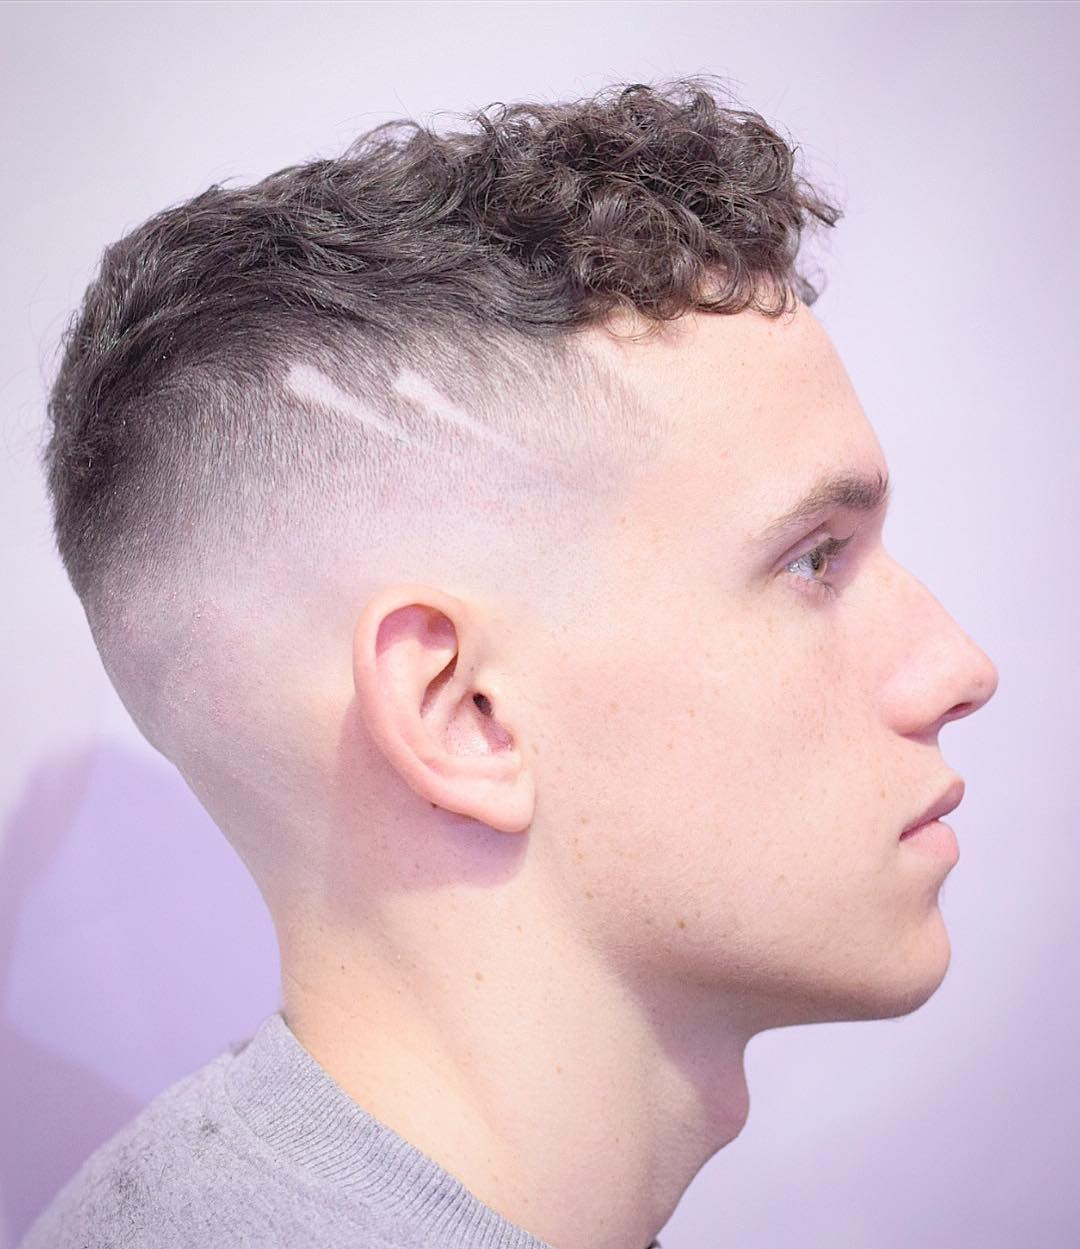 Best ideas about Shaved Side Hairstyles With Curly Hair . Save or Pin Cool Haircuts With Shaved Sides Now.